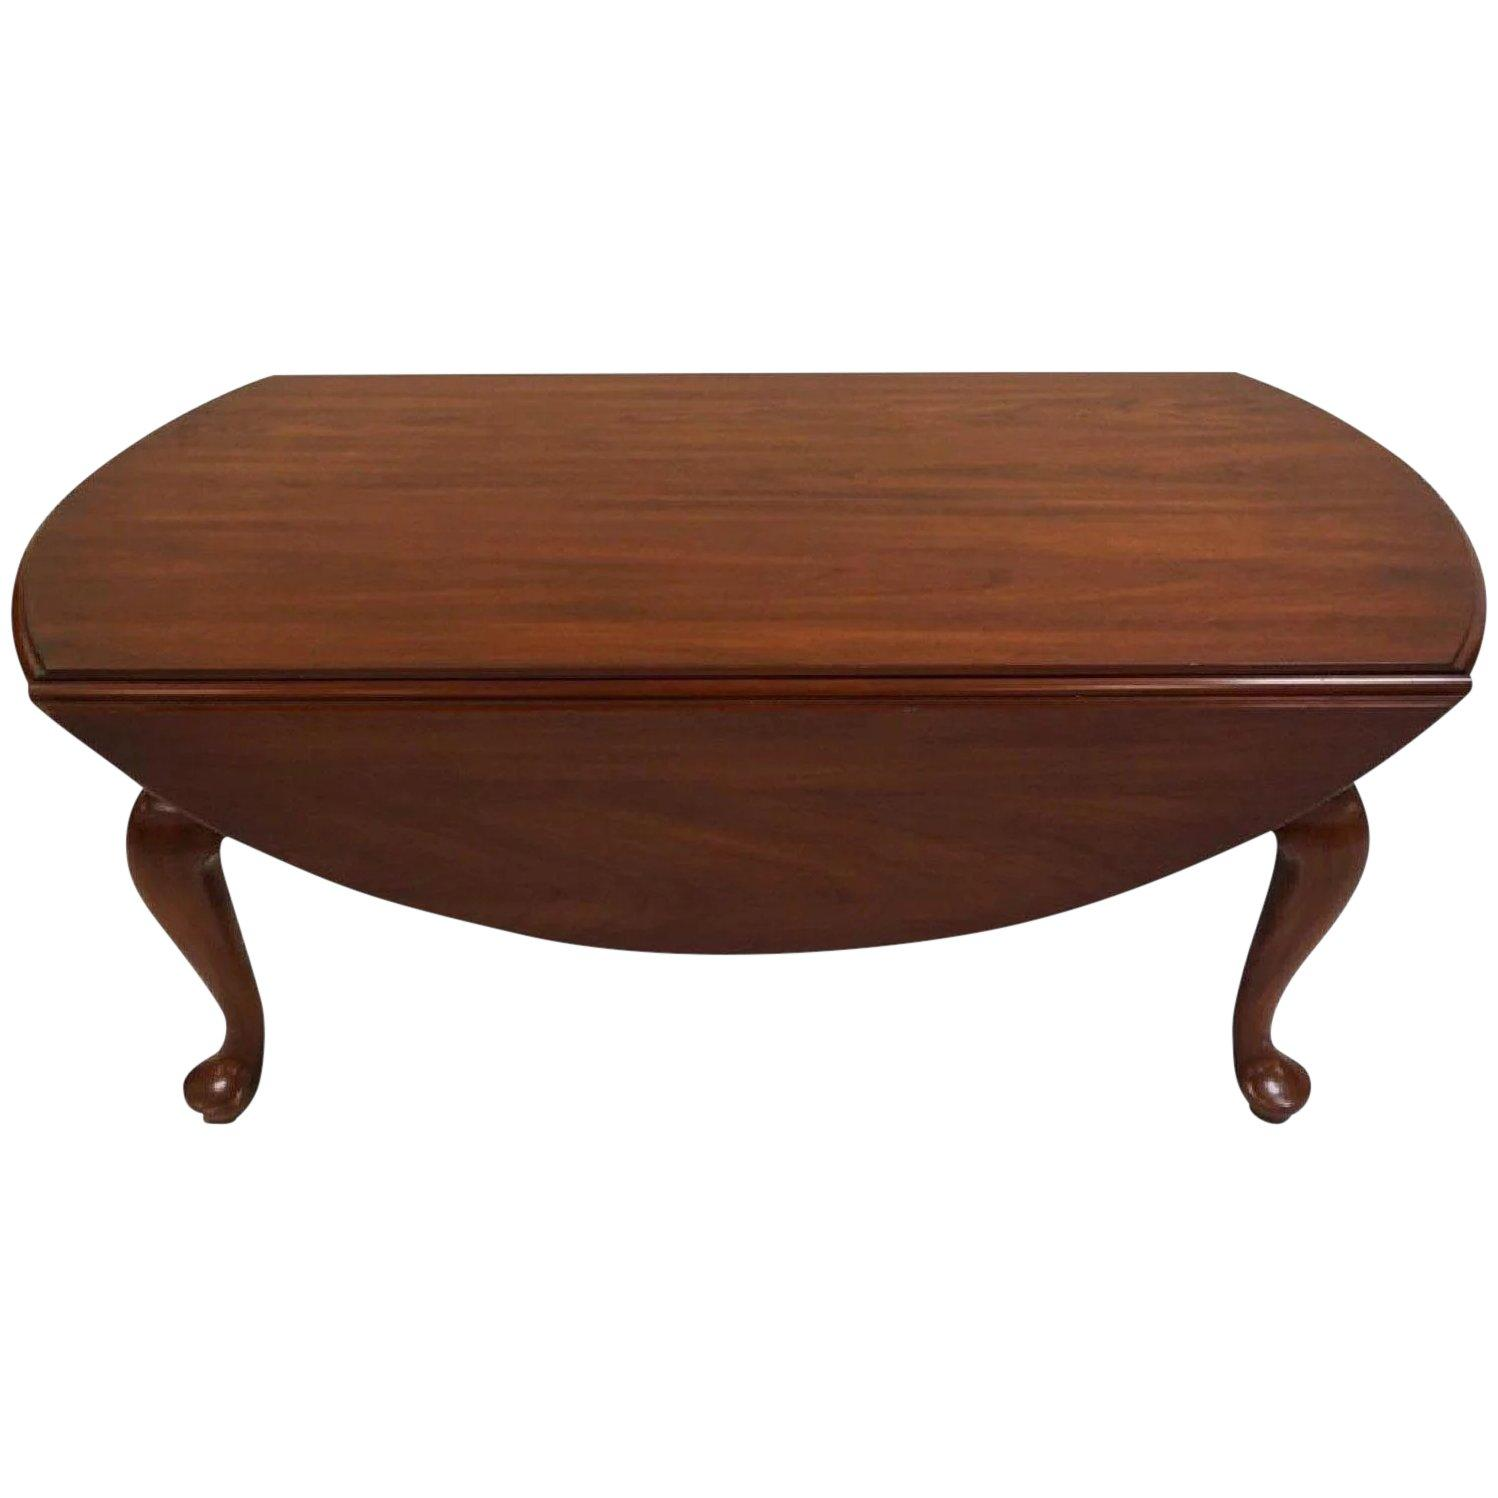 henkel harris wild cherry drop leaf handmade queen anne coffee table full master middletown accent patio for extra wide console target bistro small black battery power pack lamp